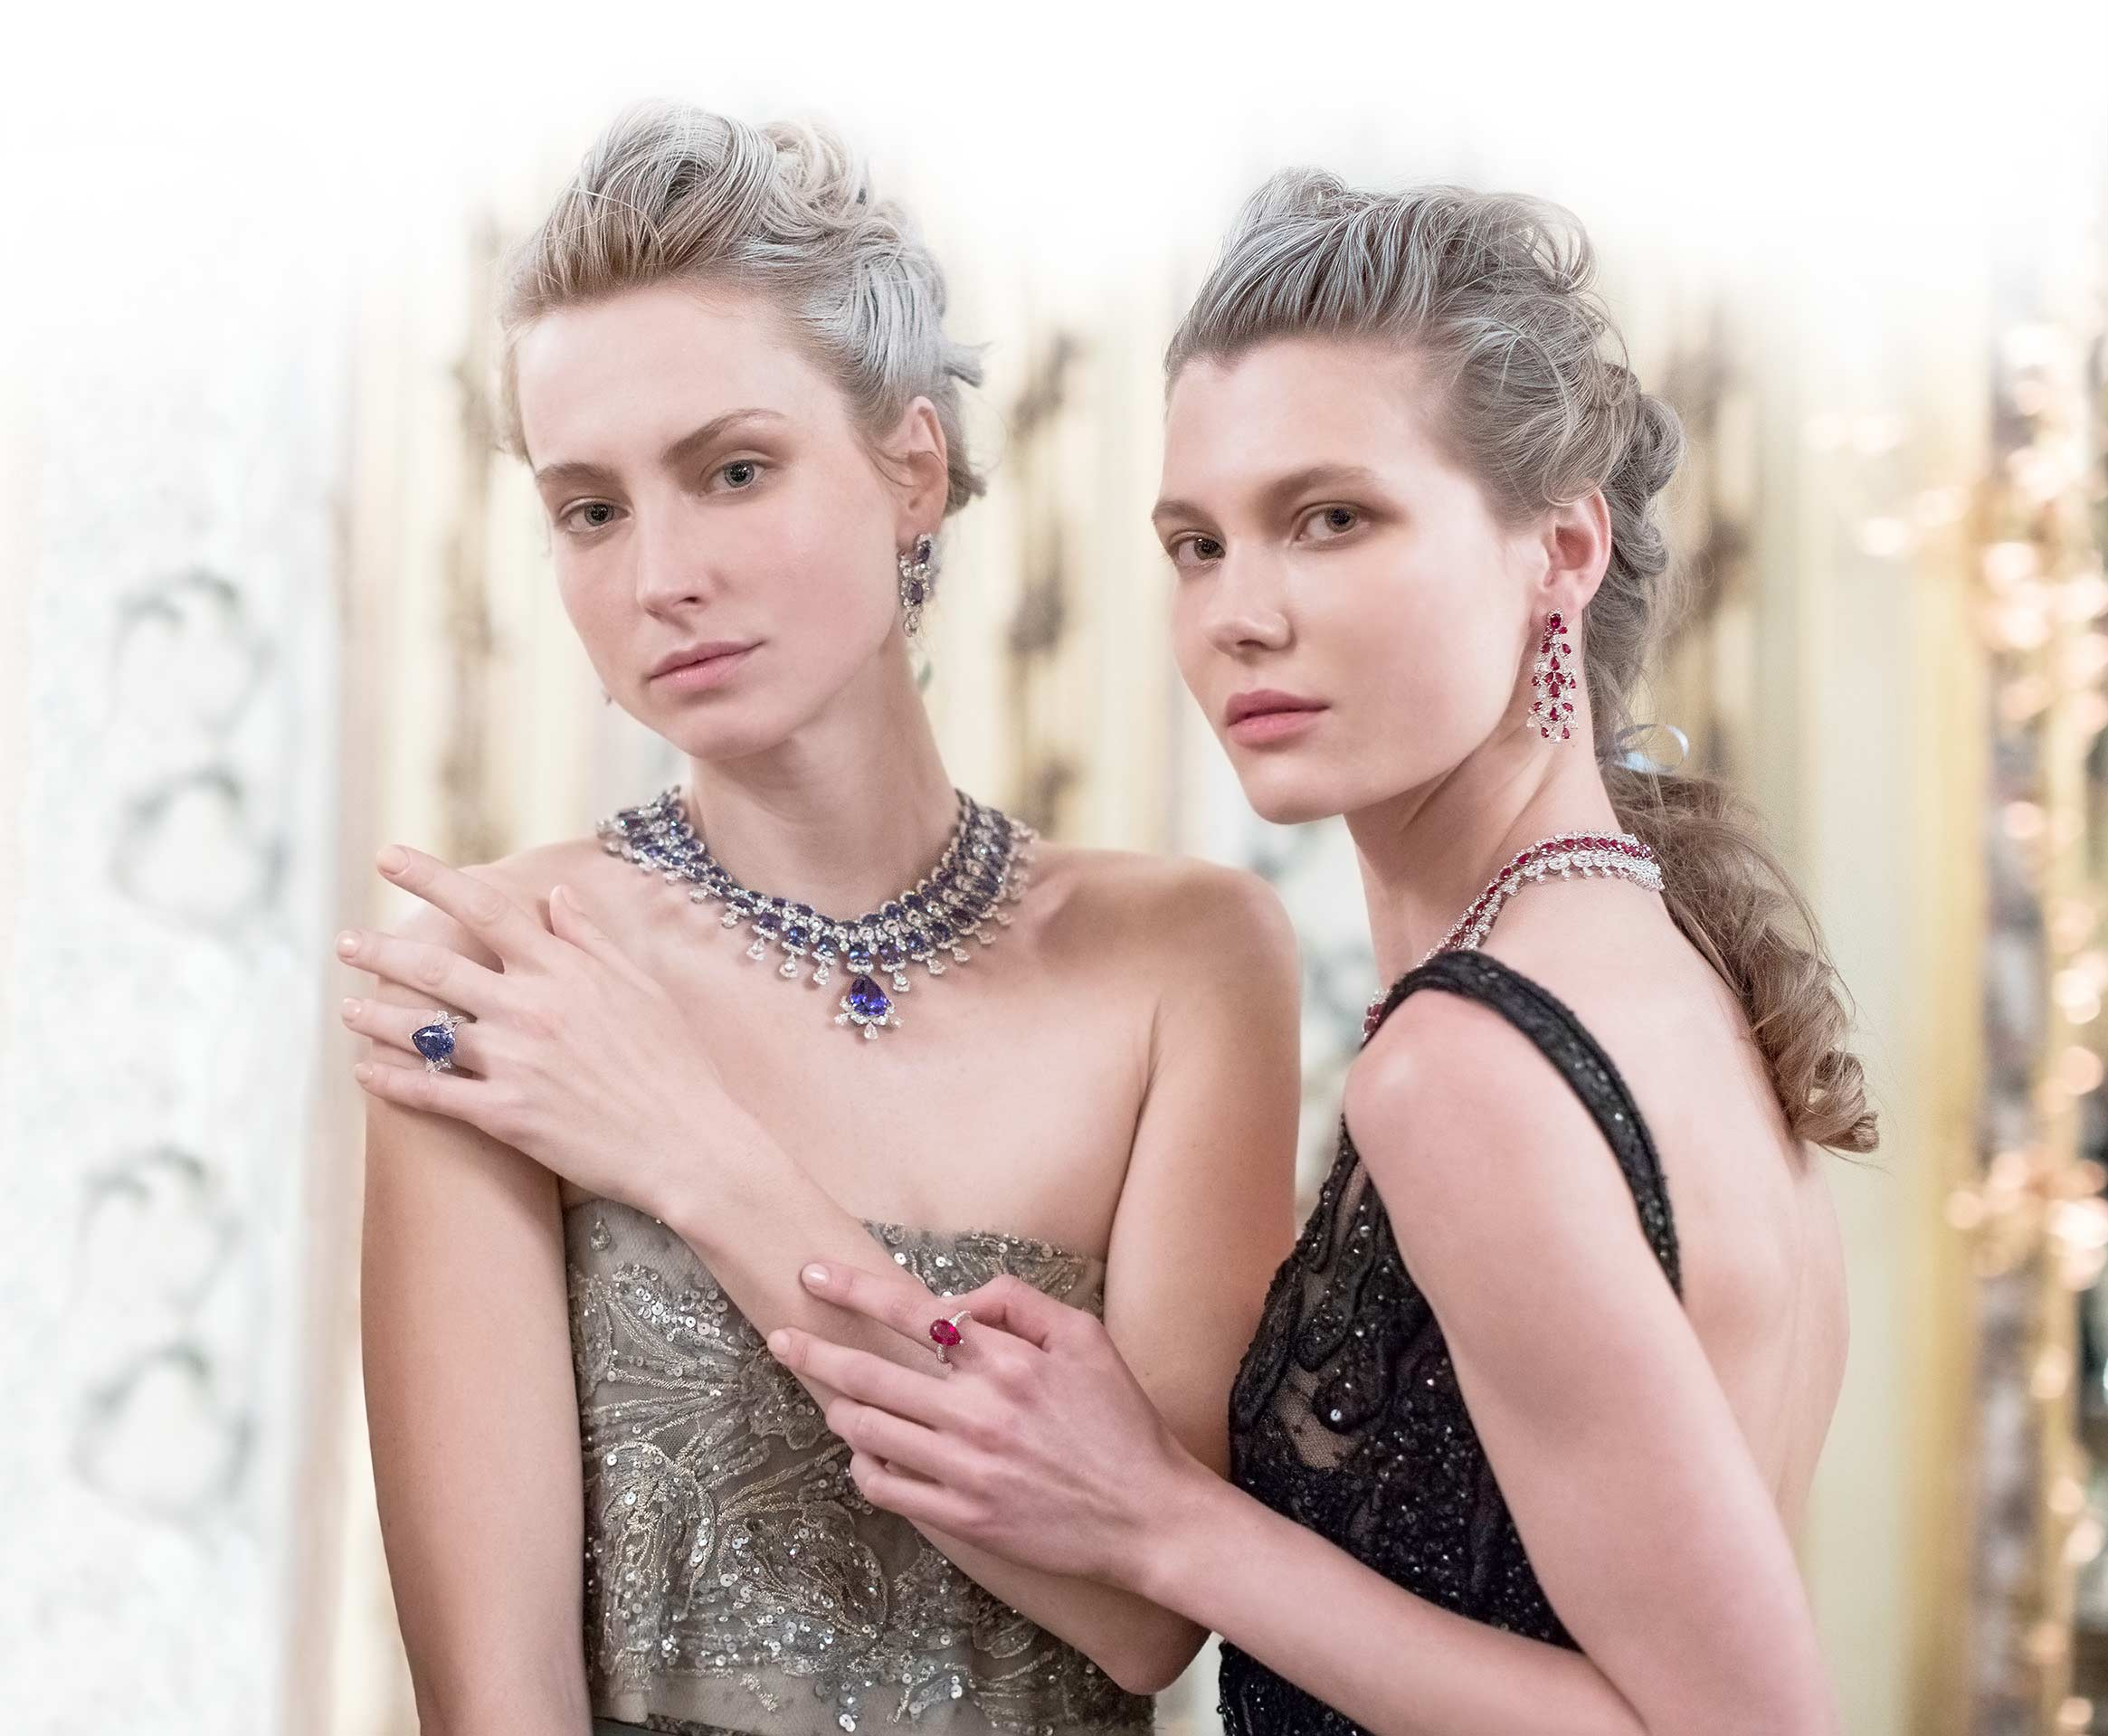 Two women wearing elegant dresses and the precious lace collection pieces.